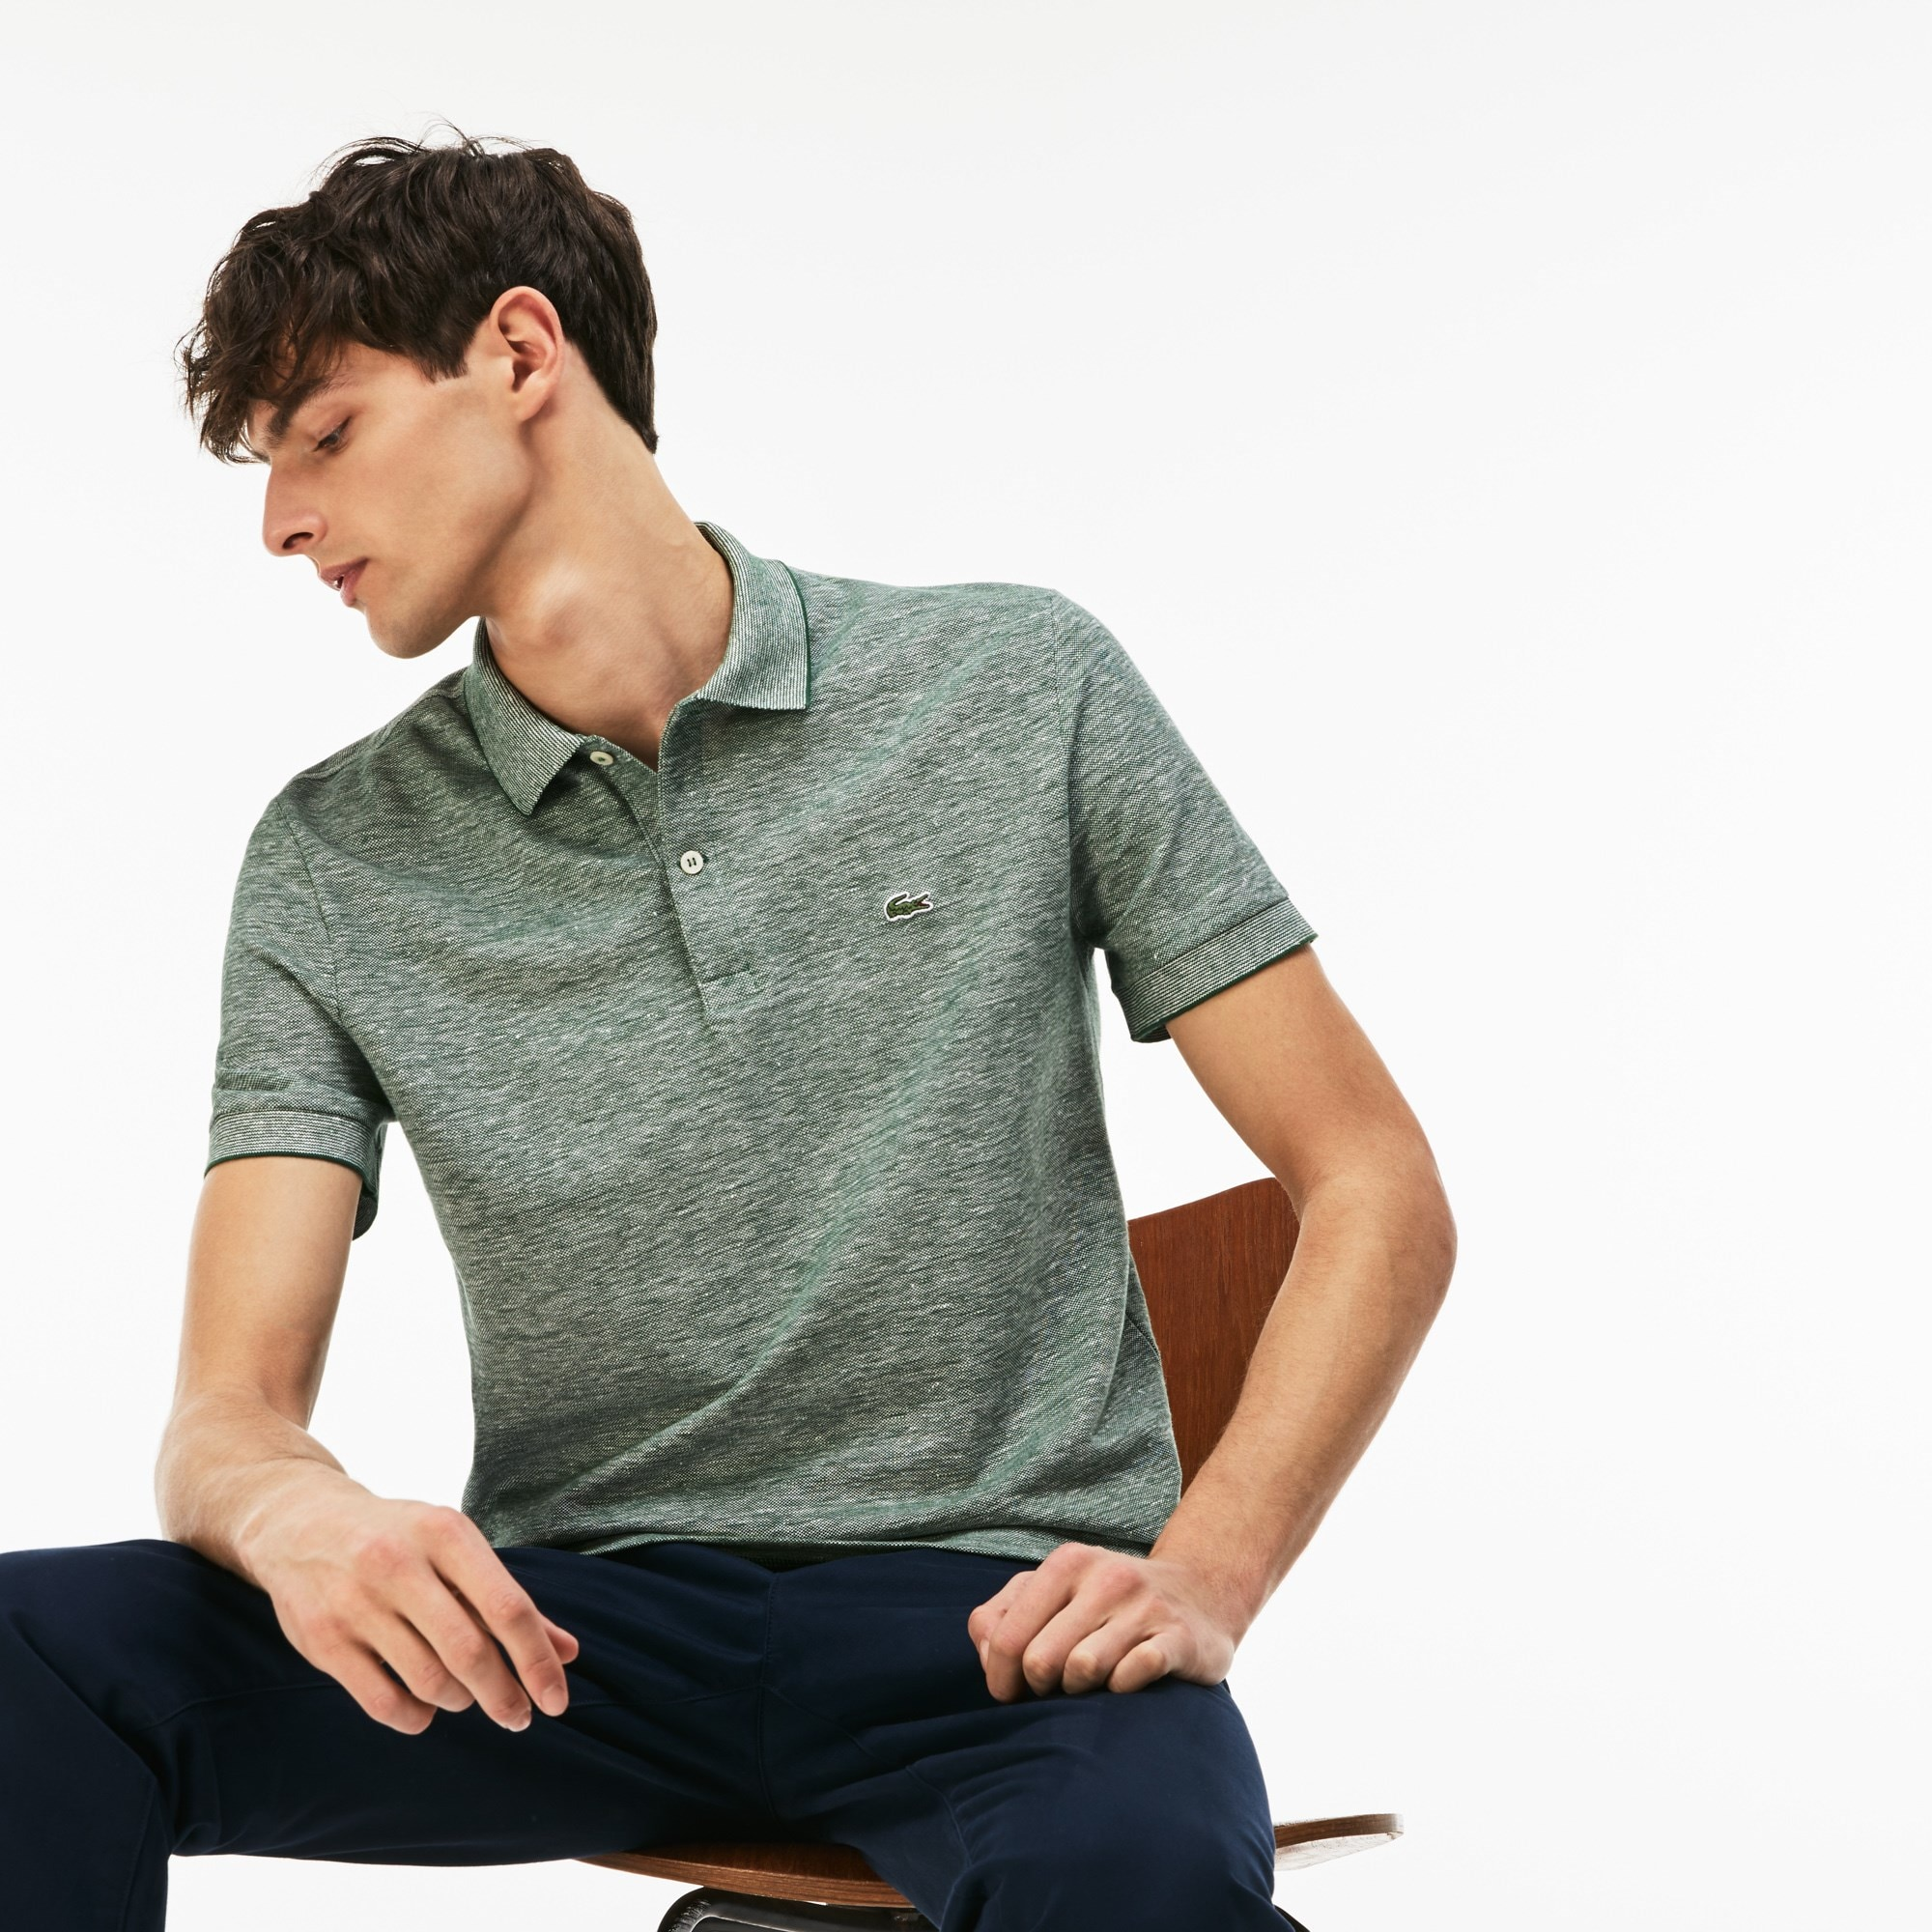 Polo regular fit Lacoste in piqué caviale a rilievi tinta unita